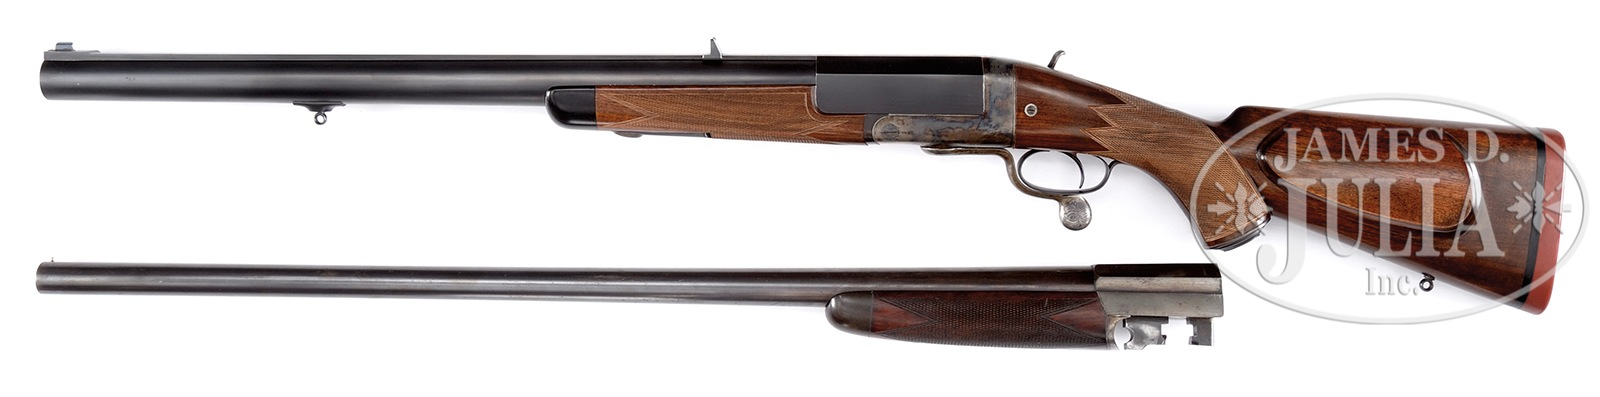 The re-barreled Army and Navy Store single shot four bore comes with its old barrel included. (Picture courtesy James D. Julia Inc.).